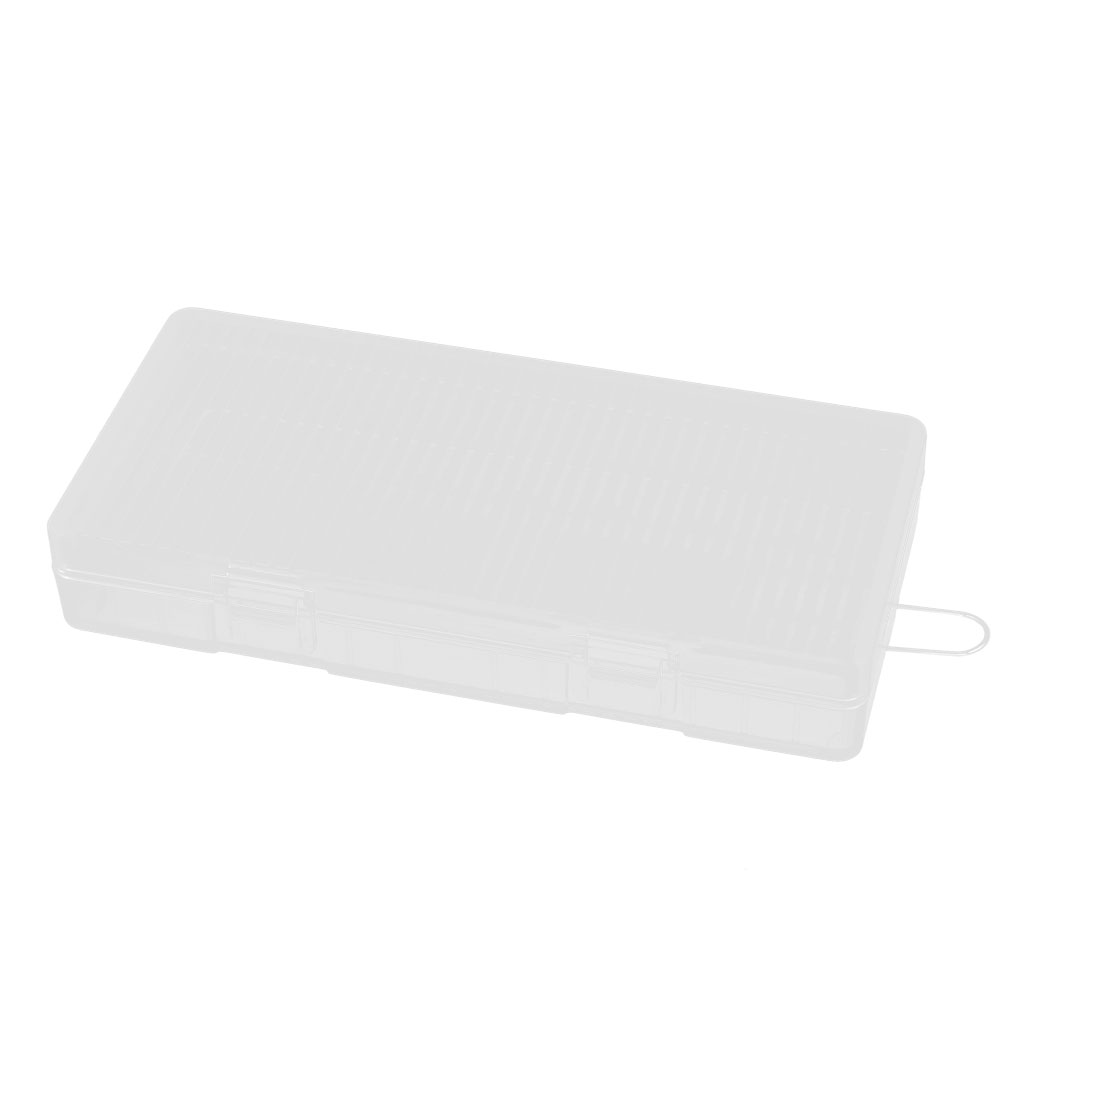 Hard Plastic Case Holder Storage Box Container for 8 x AA Battery